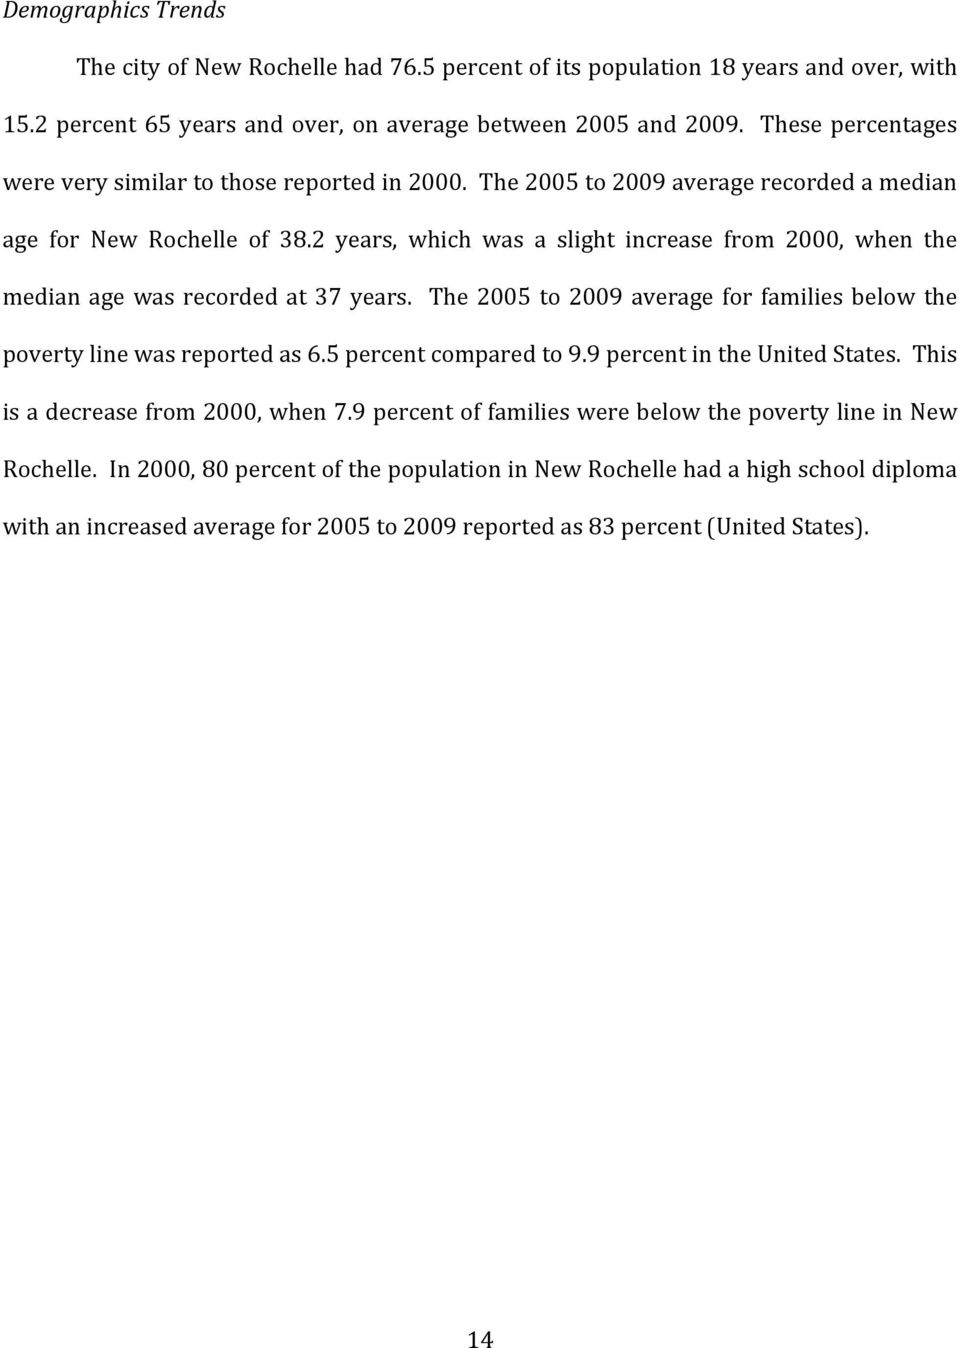 2 years, which was a slight increase from 2000, when the median age was recorded at 37 years. The 2005 to 2009 average for families below the poverty line was reported as 6.5 percent compared to 9.